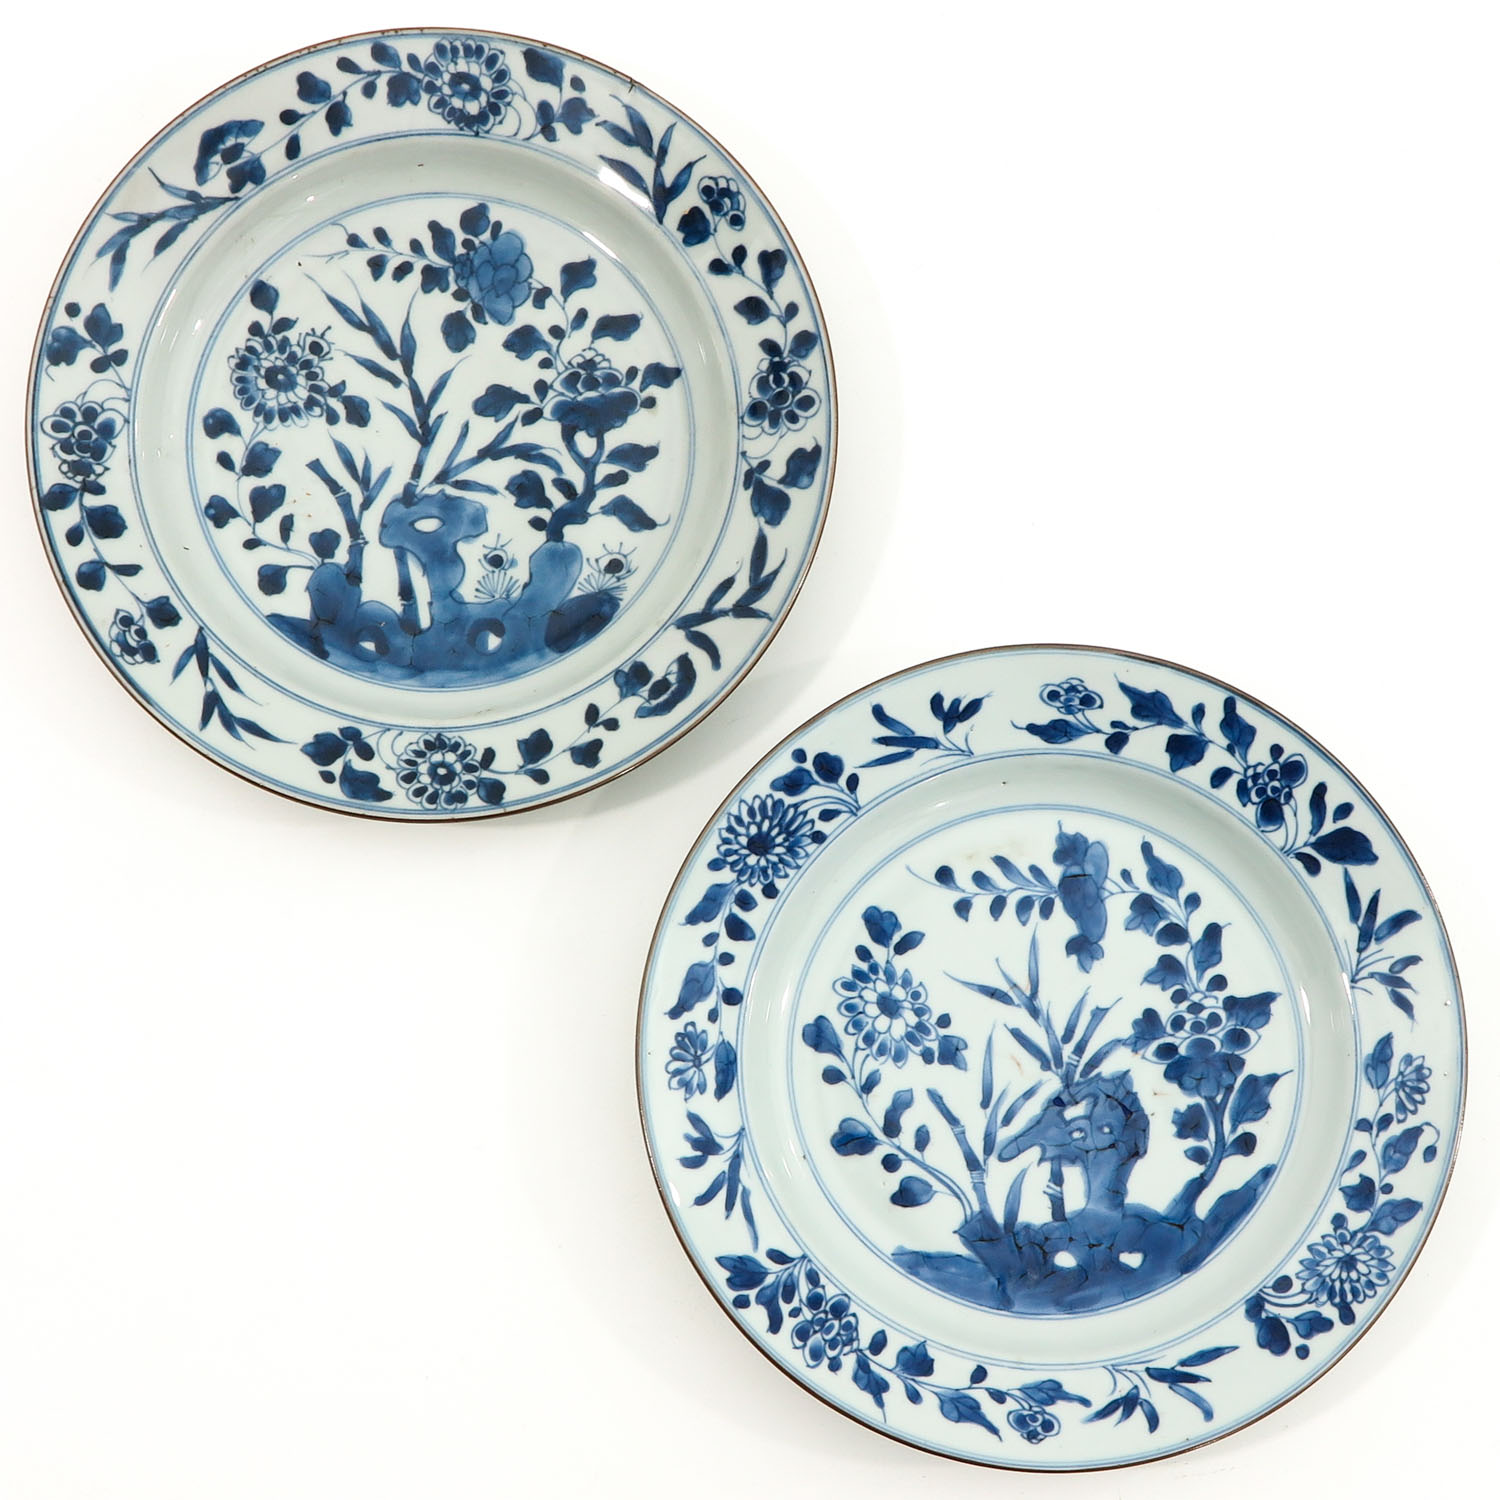 A Pair of Blue and White Plates